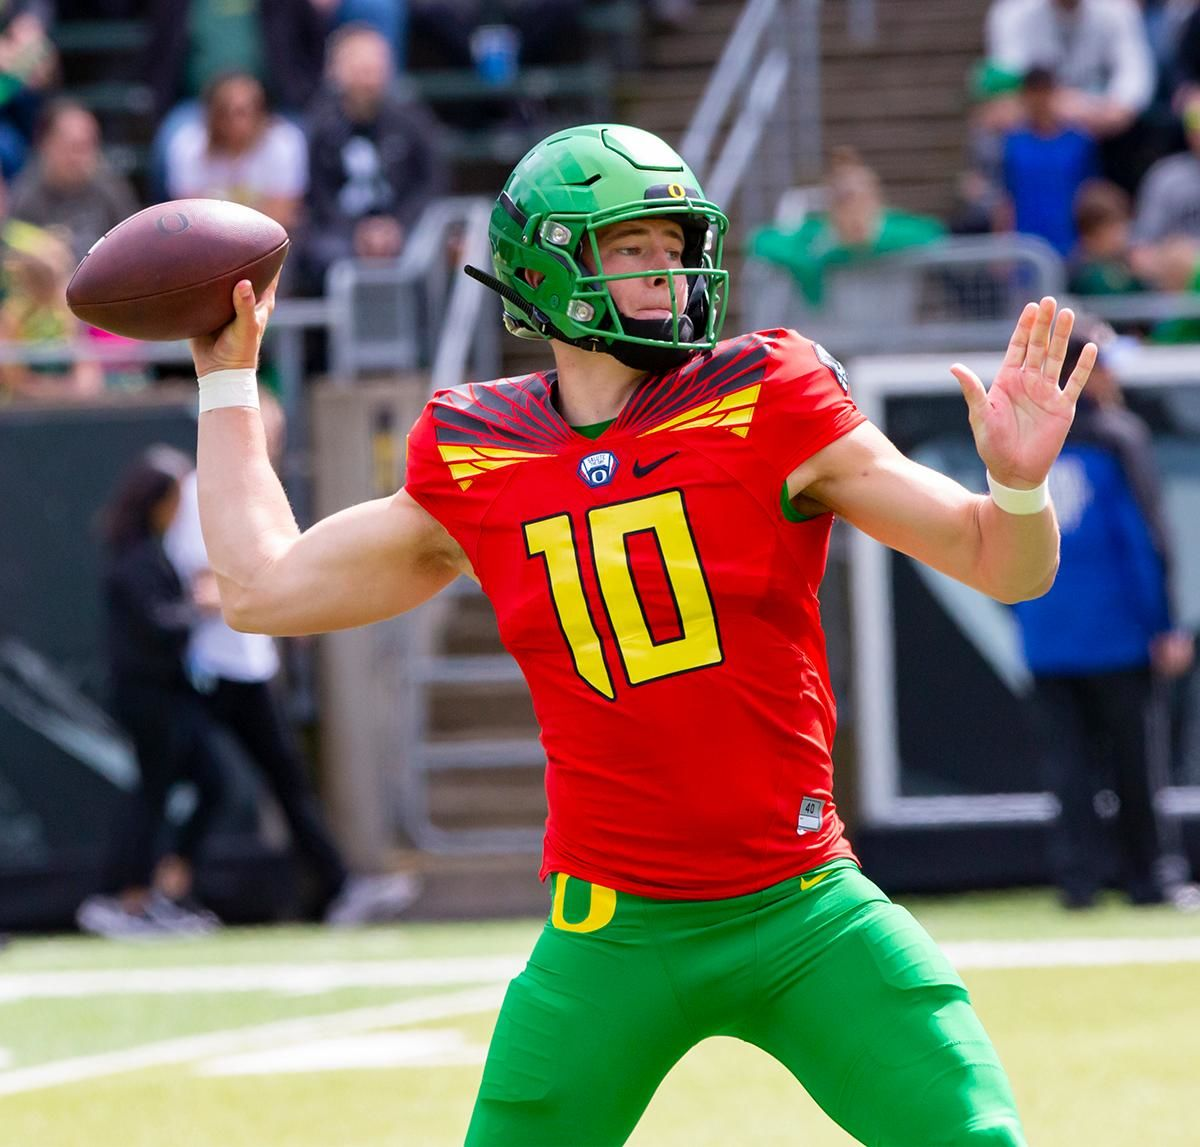 Mighty Oregon quarterback Justin Herbert (10) throws a pass during Saturday's game. More than 35,000 fans turned out for the University of Oregon's annual spring football game. Mighty Oregon defeated the Fighting Ducks 20 to 13 during the Saturday afternoon game at Autzen Stadium in Eugene, Ore. on April 20, 2019. [Ben Lonergan for KVAL.com] - KVAL.com